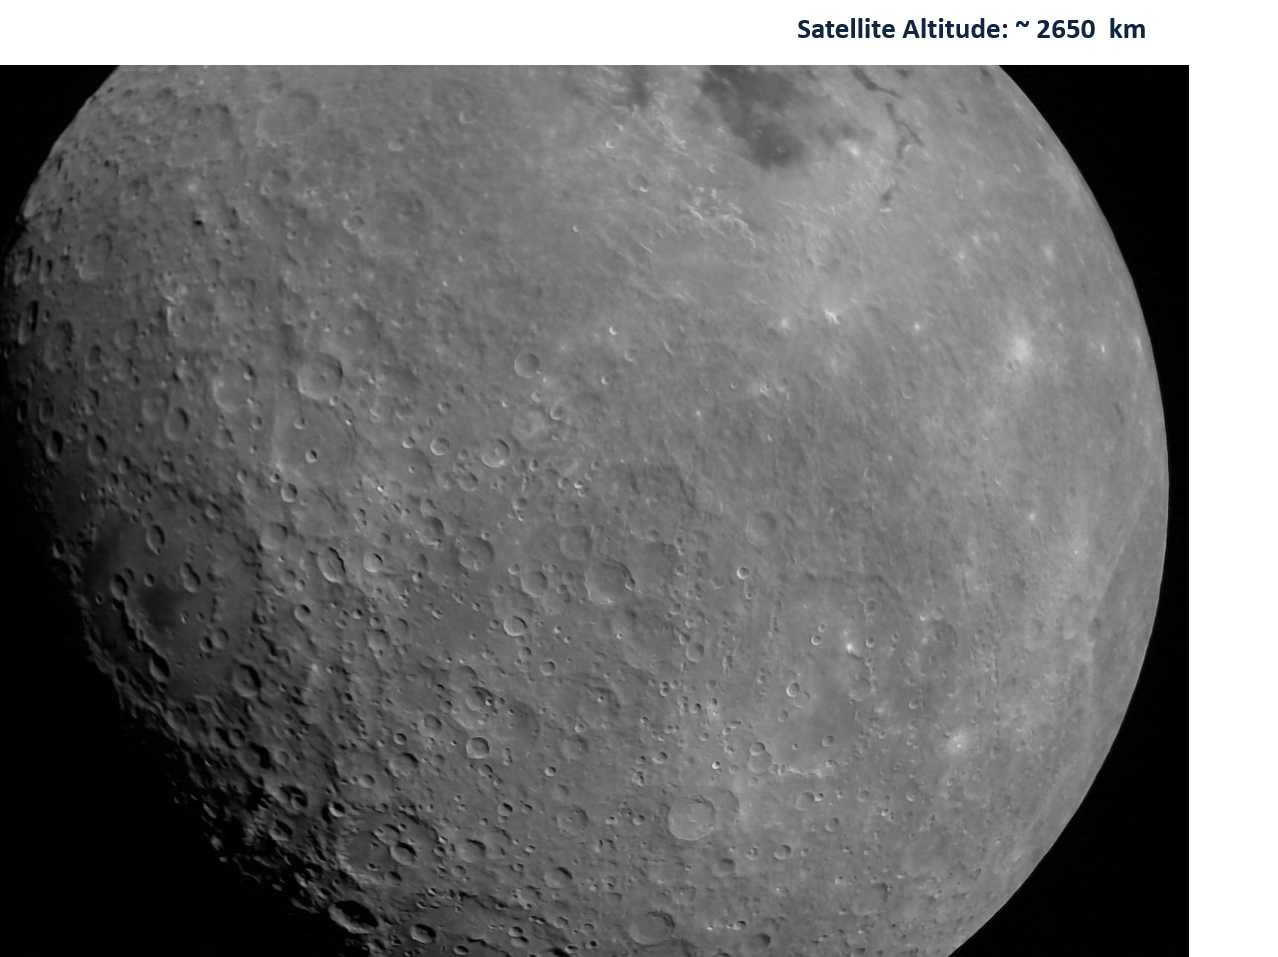 Moon as viewed by Chandrayaan-2 LI4 Camera on 21 August 2019 19:03 UT